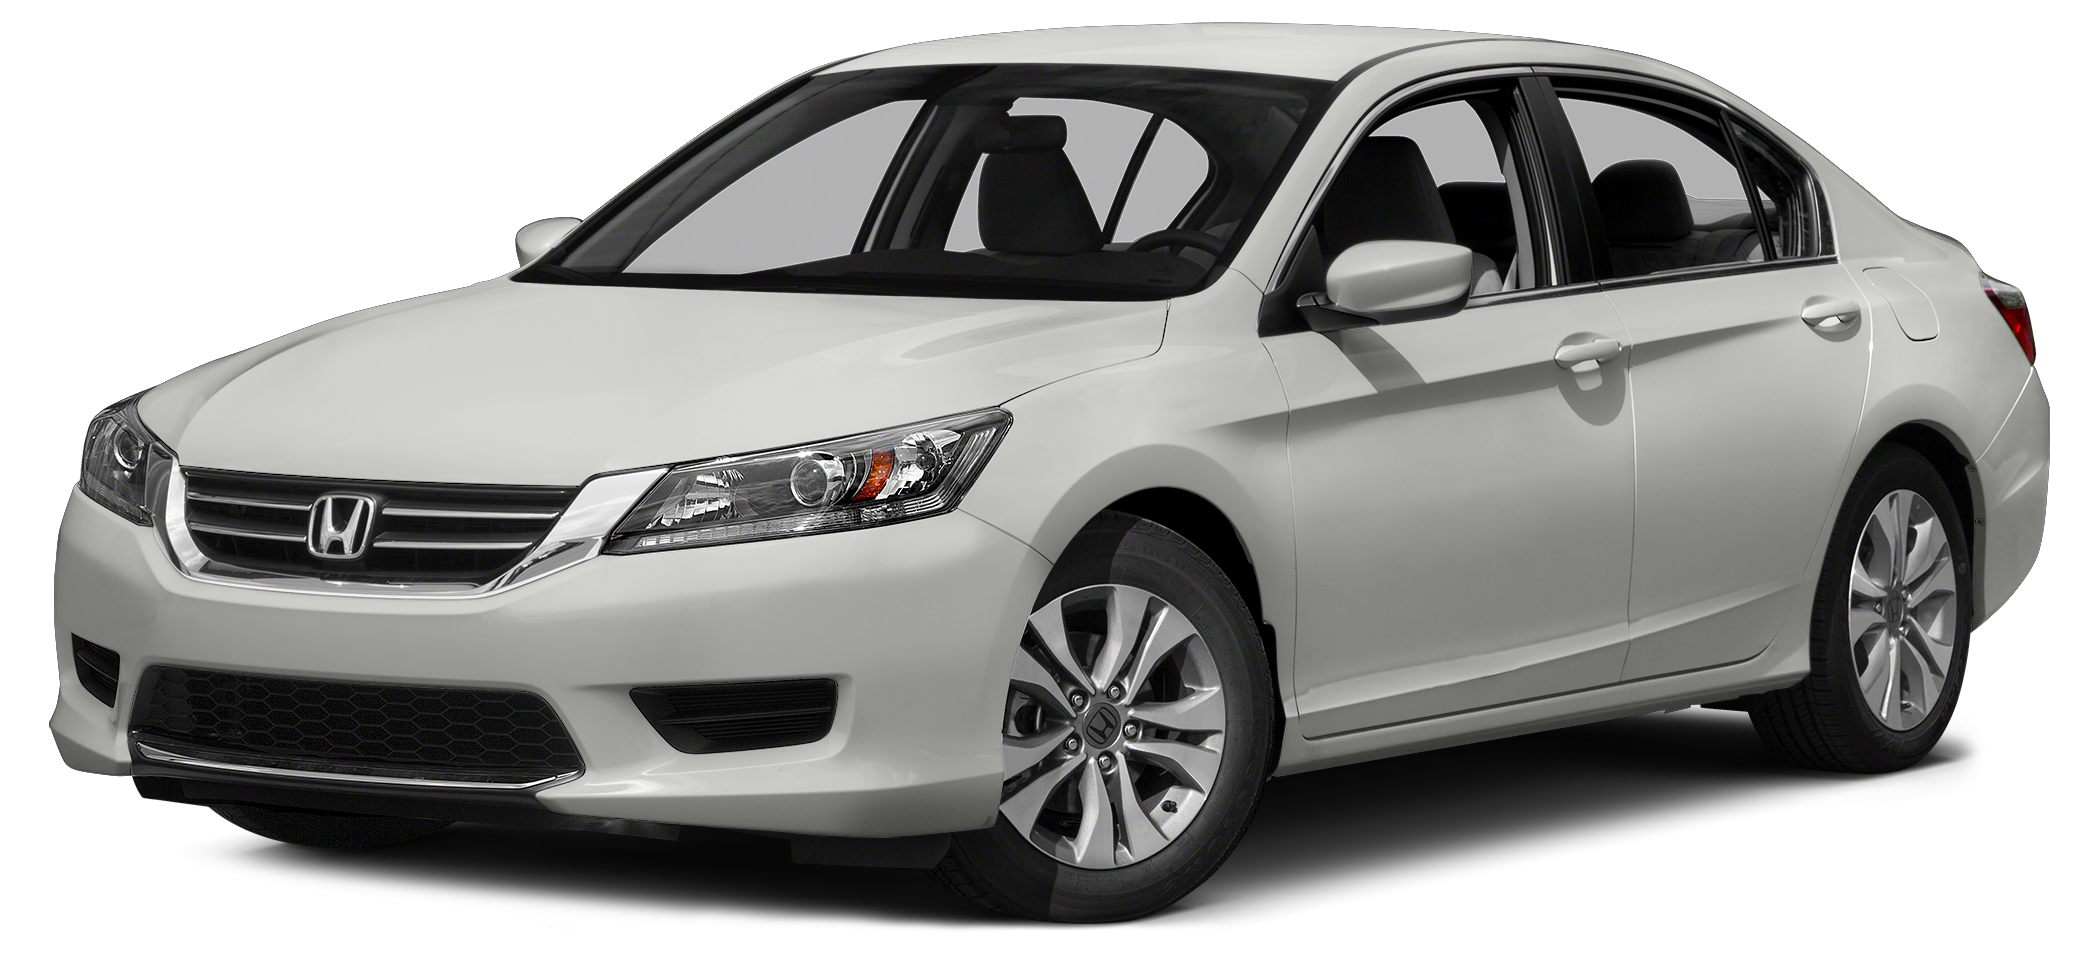 2013 Honda Accord LX NEW BODY STYLE LOW MILES EXCELLENT CONDITION EXCELLENT CONDITION PRICED T